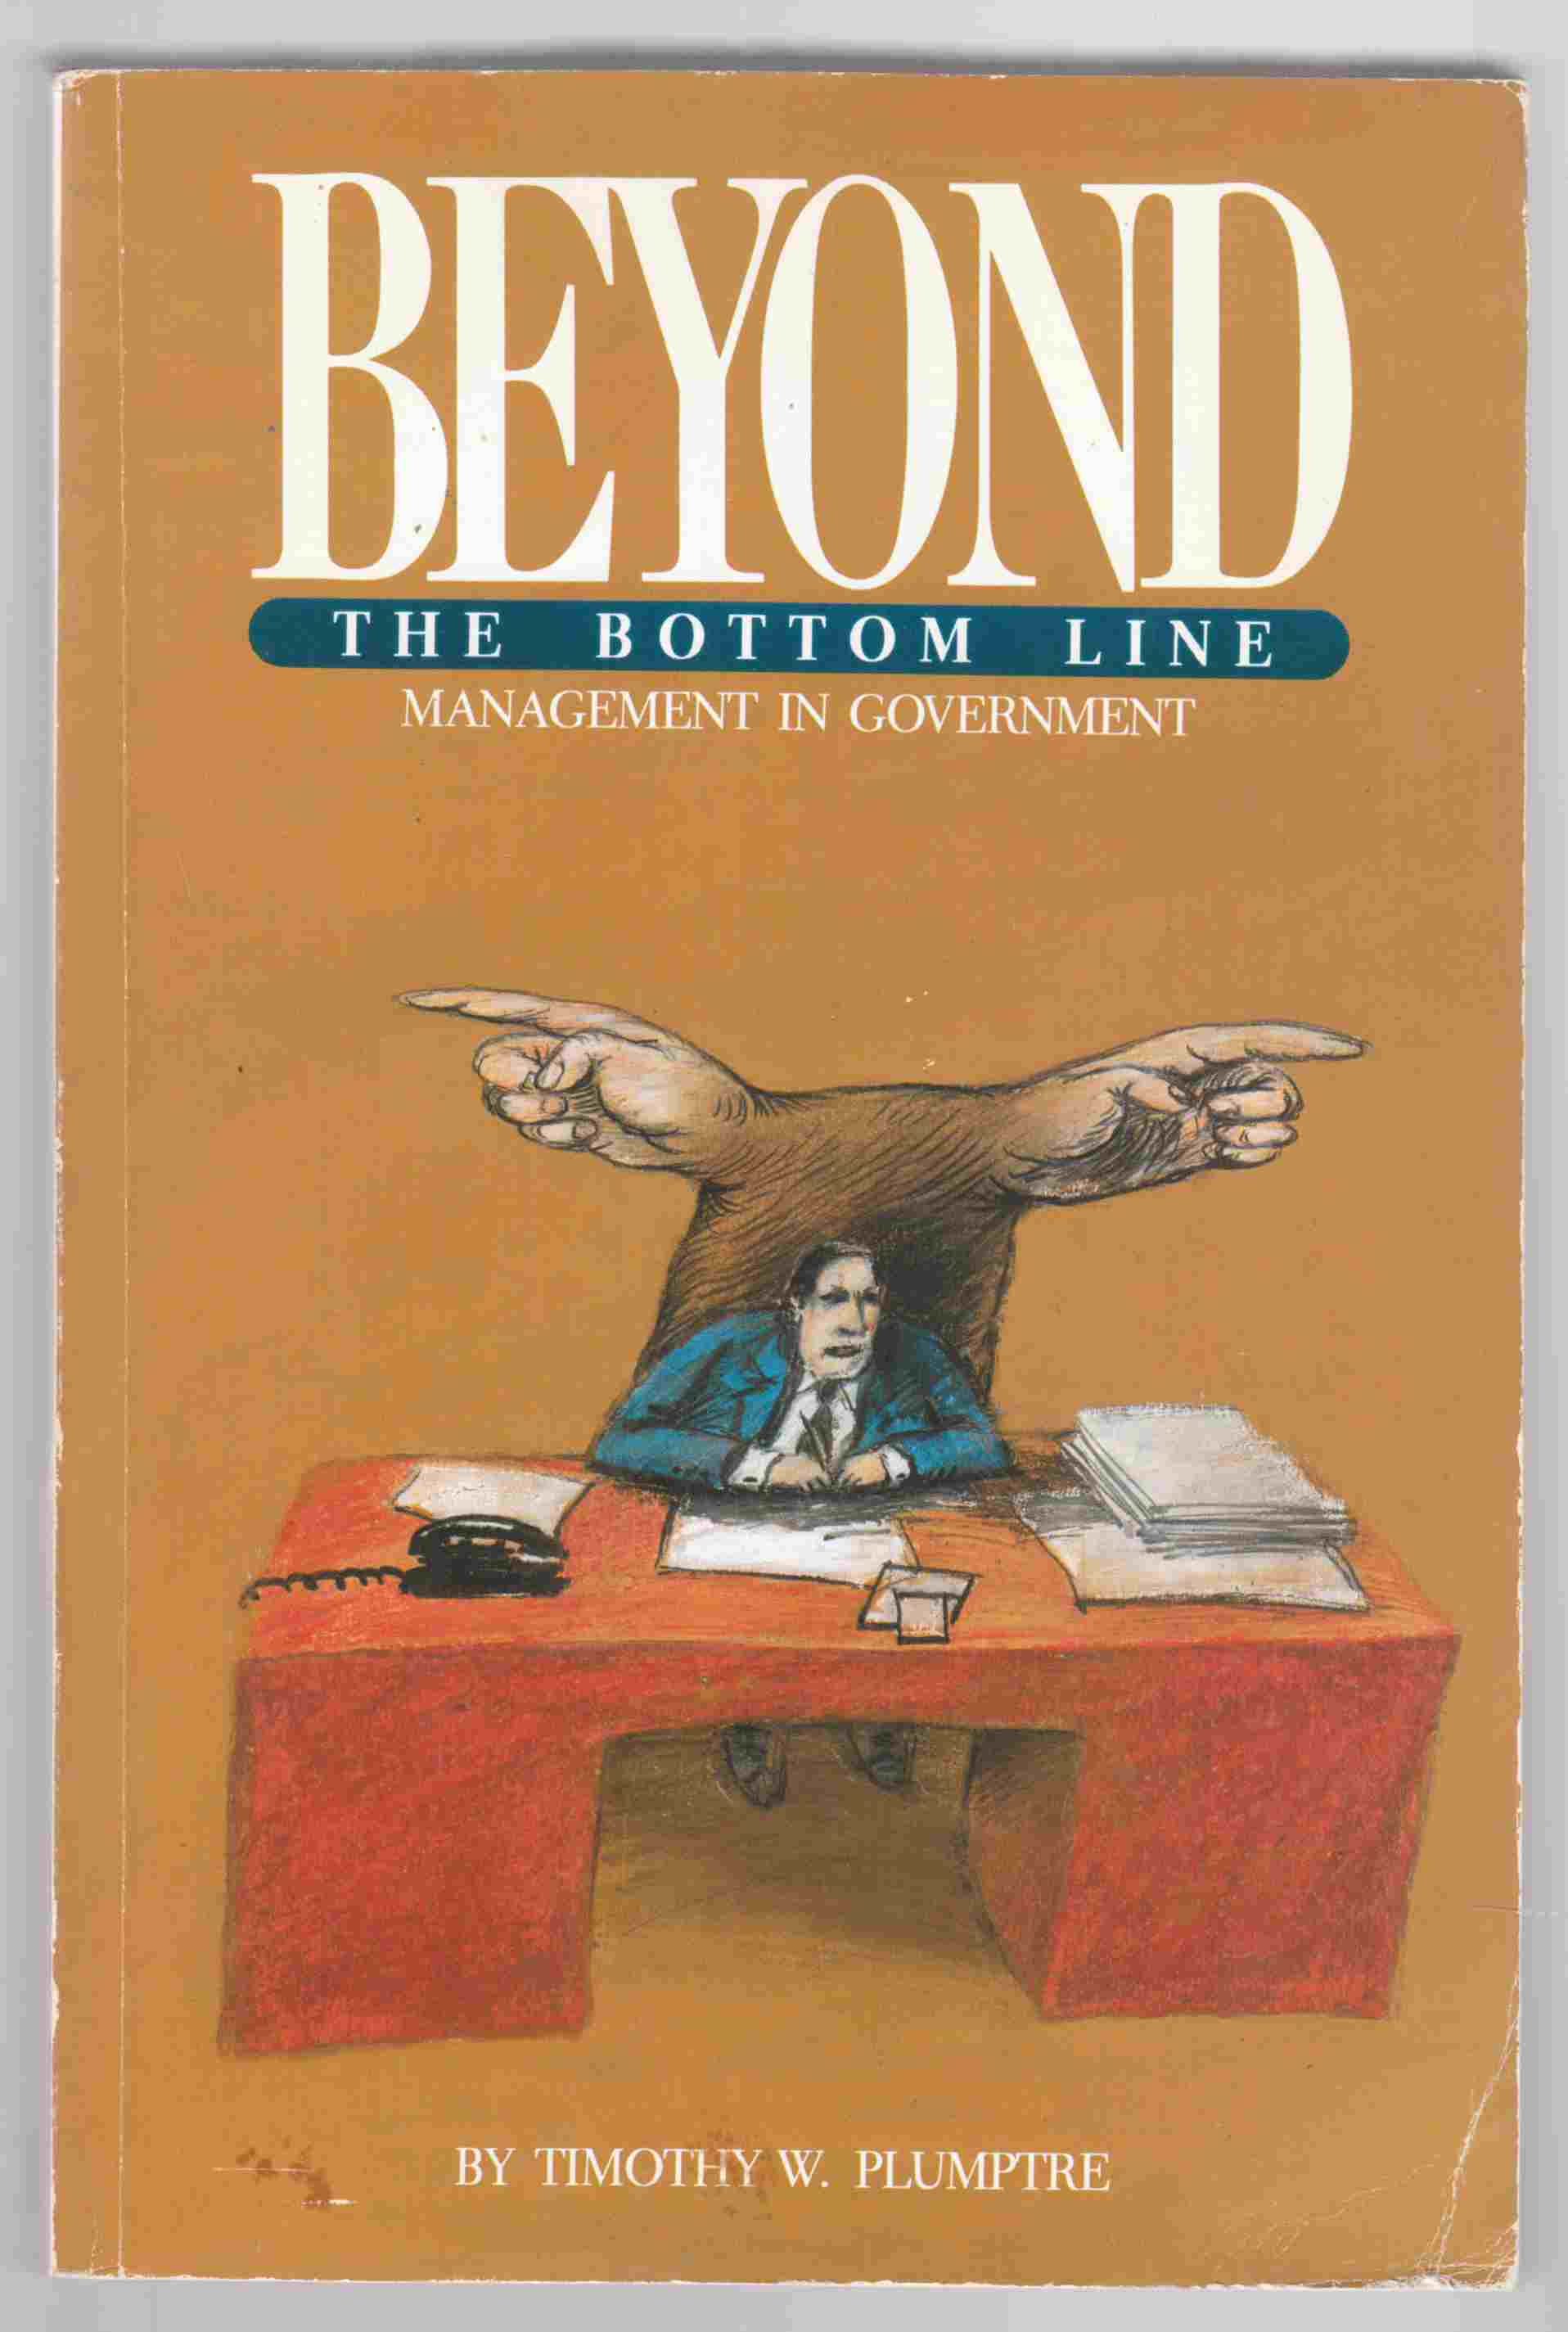 Image for Beyond the Bottom Line Management in Government